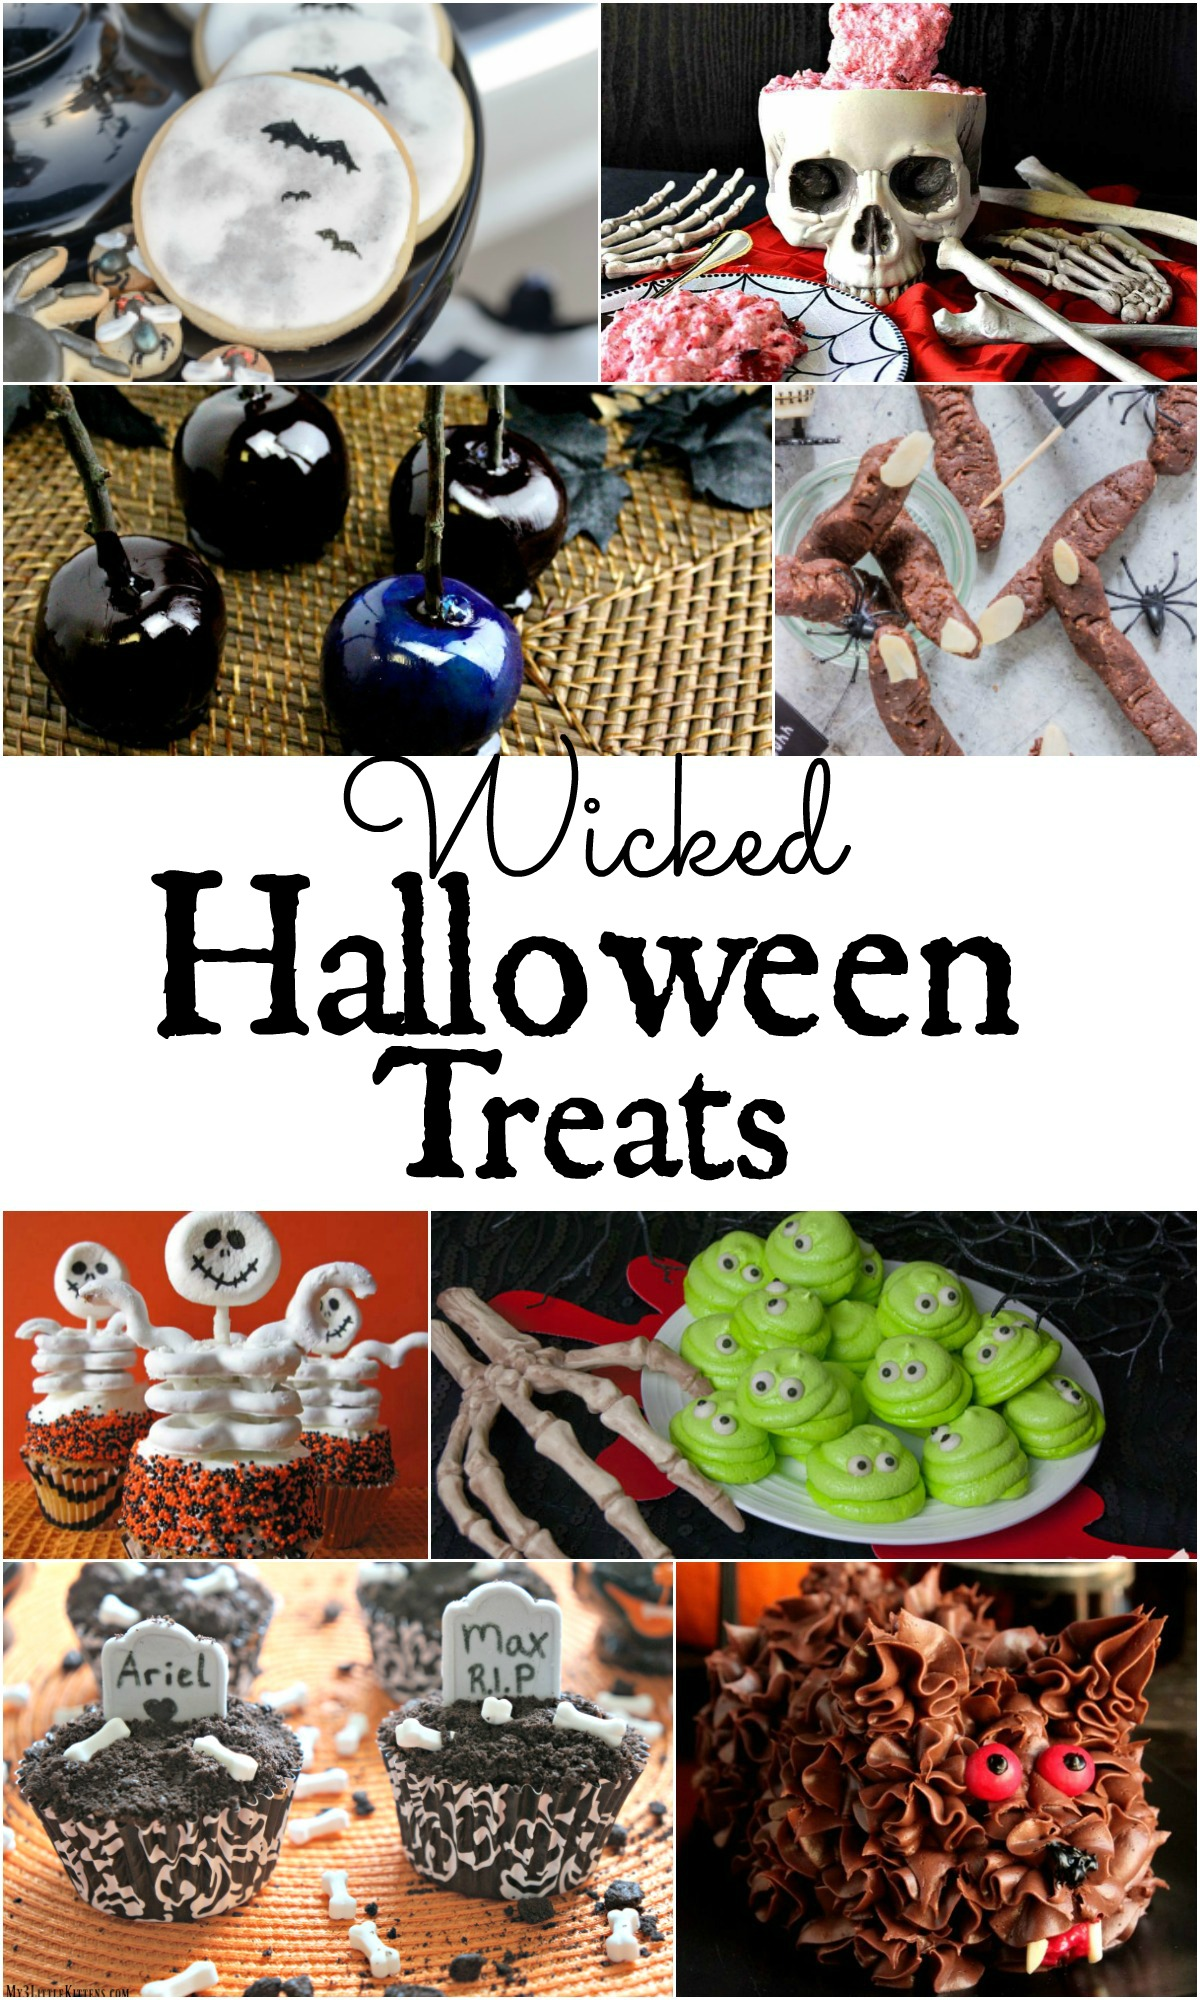 Wicked Halloween Treats - Thistle Hill